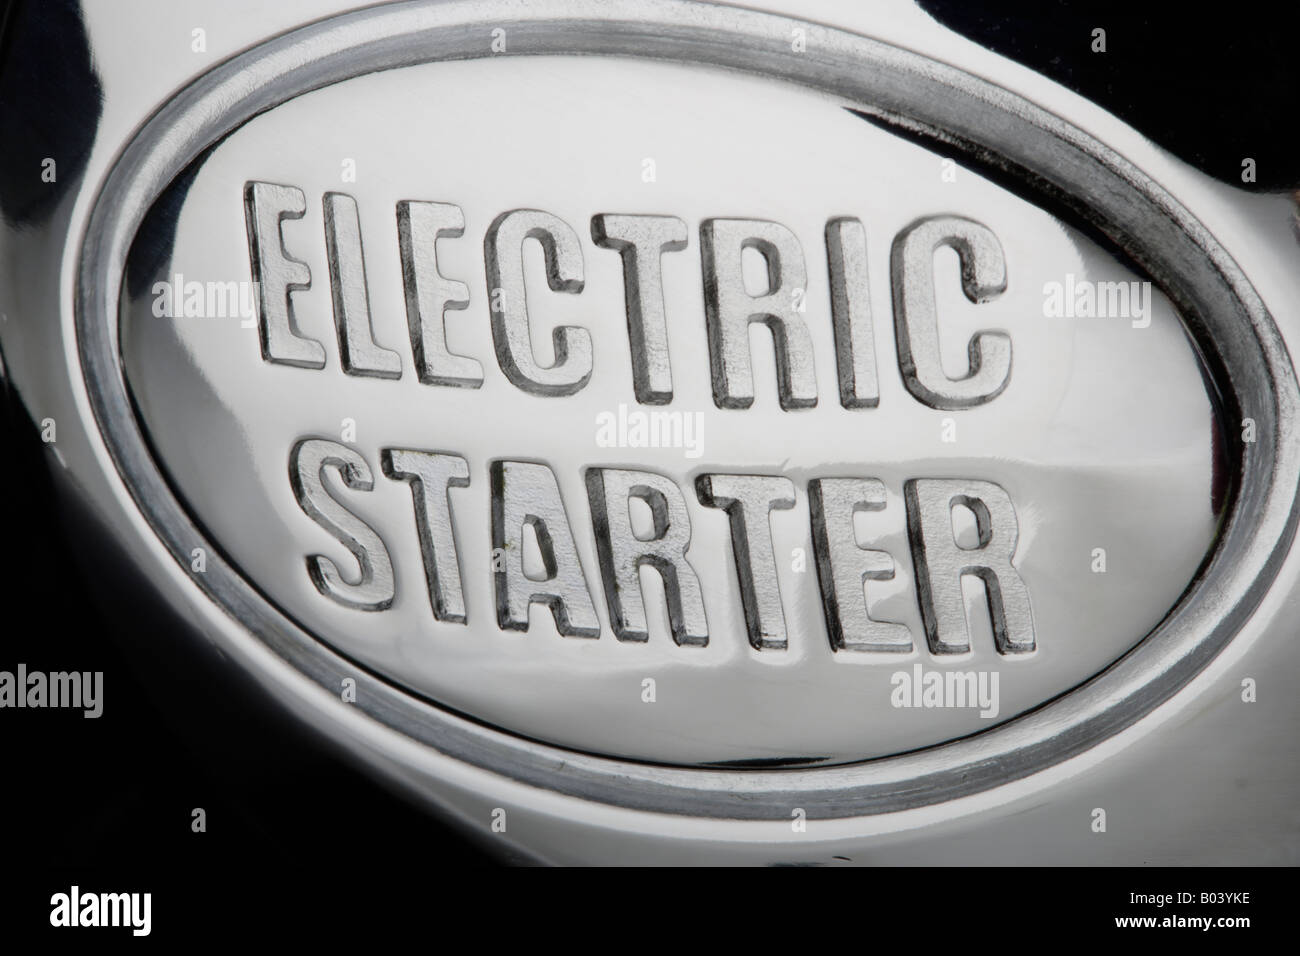 Words Electric Starter embossed in metal - Stock Image